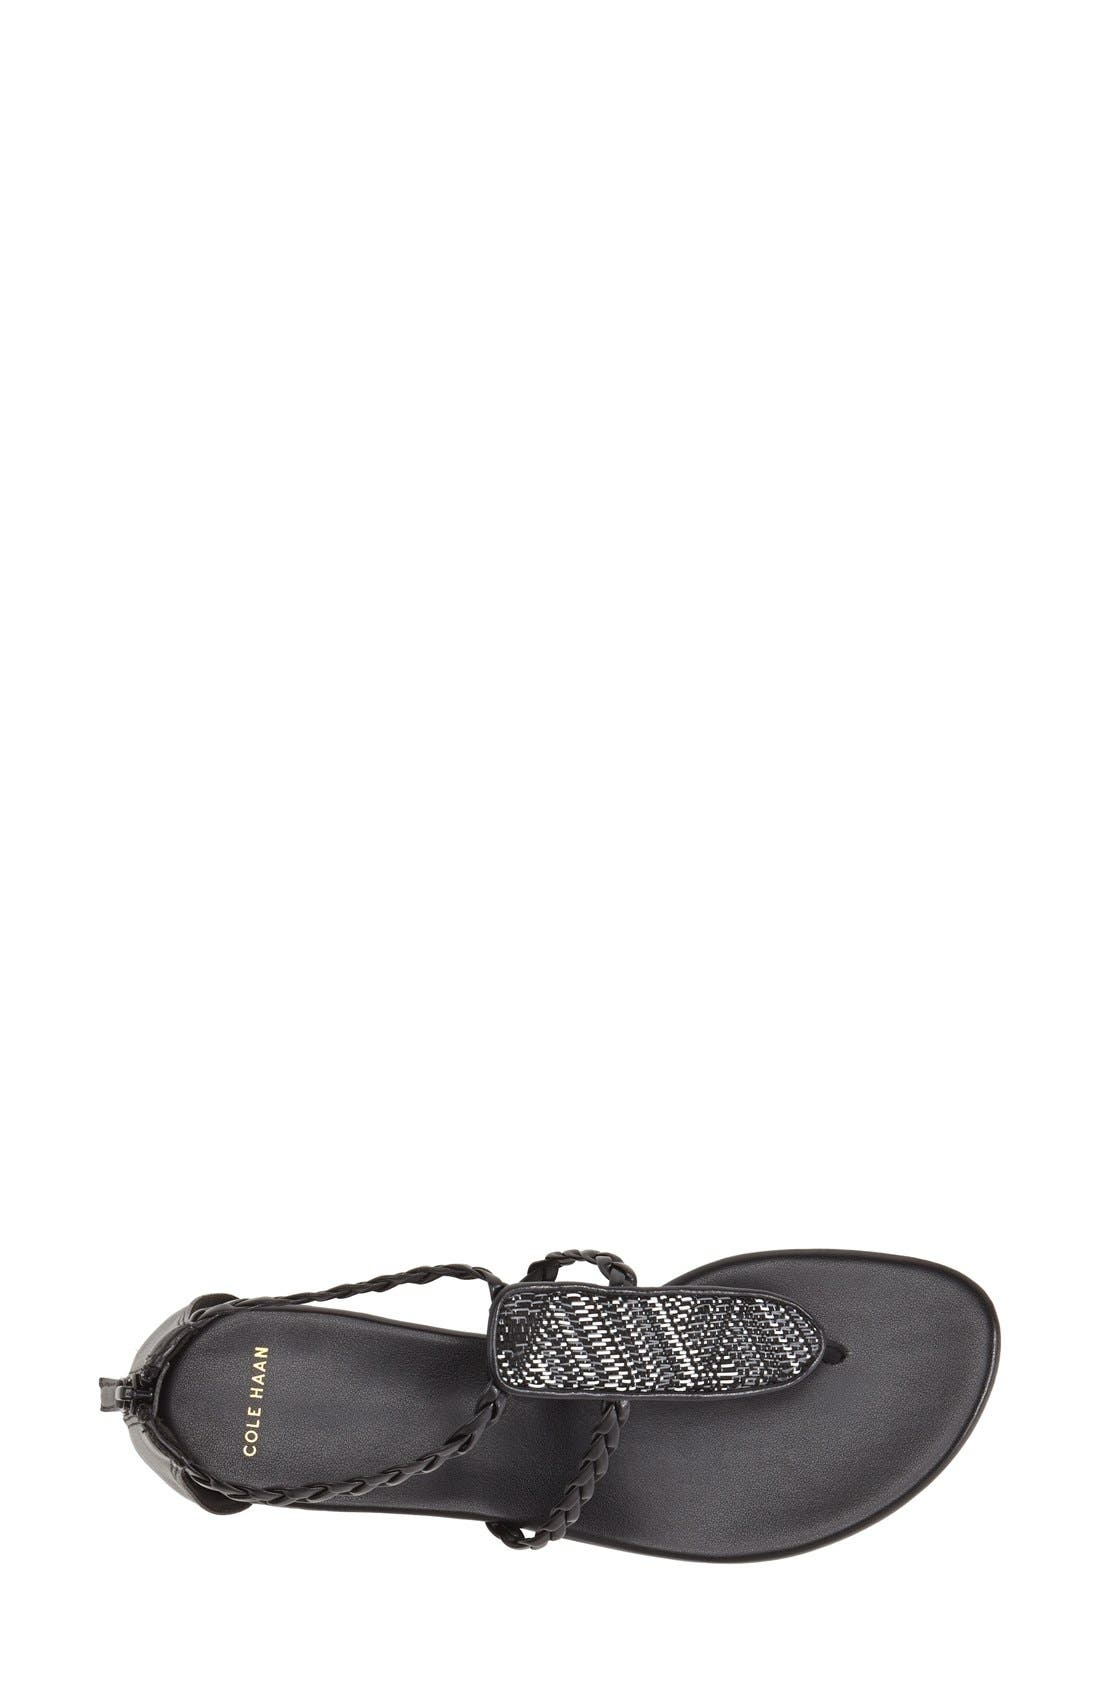 'Abbe' Sandal,                             Alternate thumbnail 3, color,                             Black/ White Leather